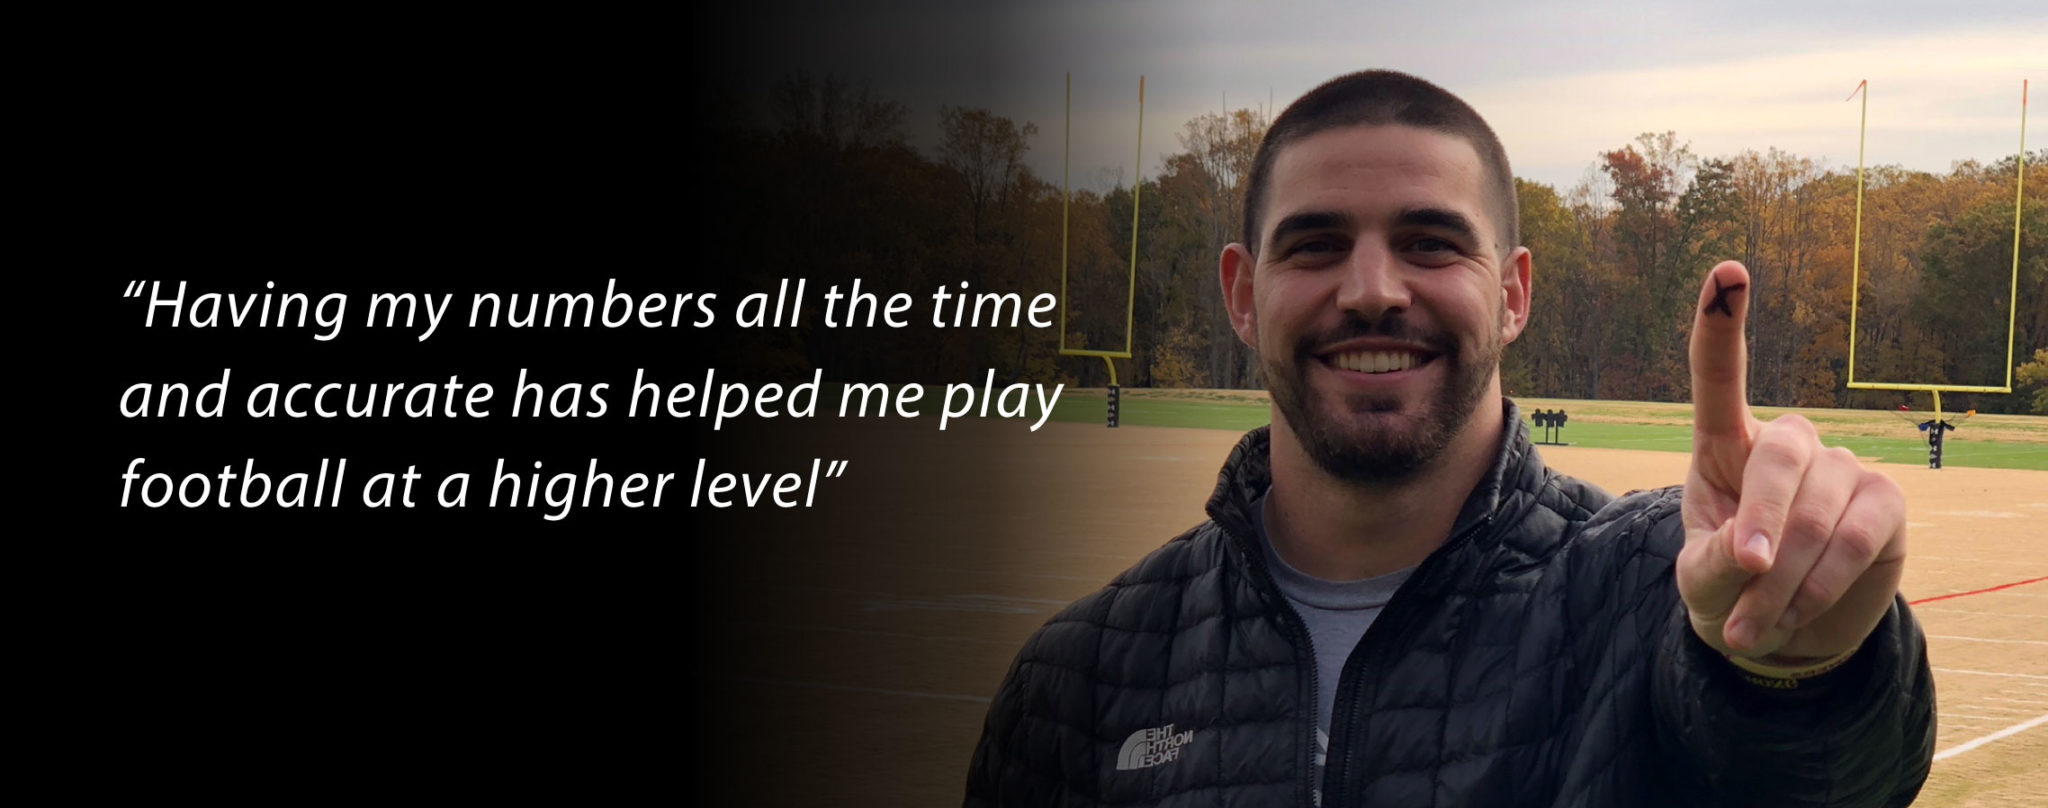 Mark Andrews with quote